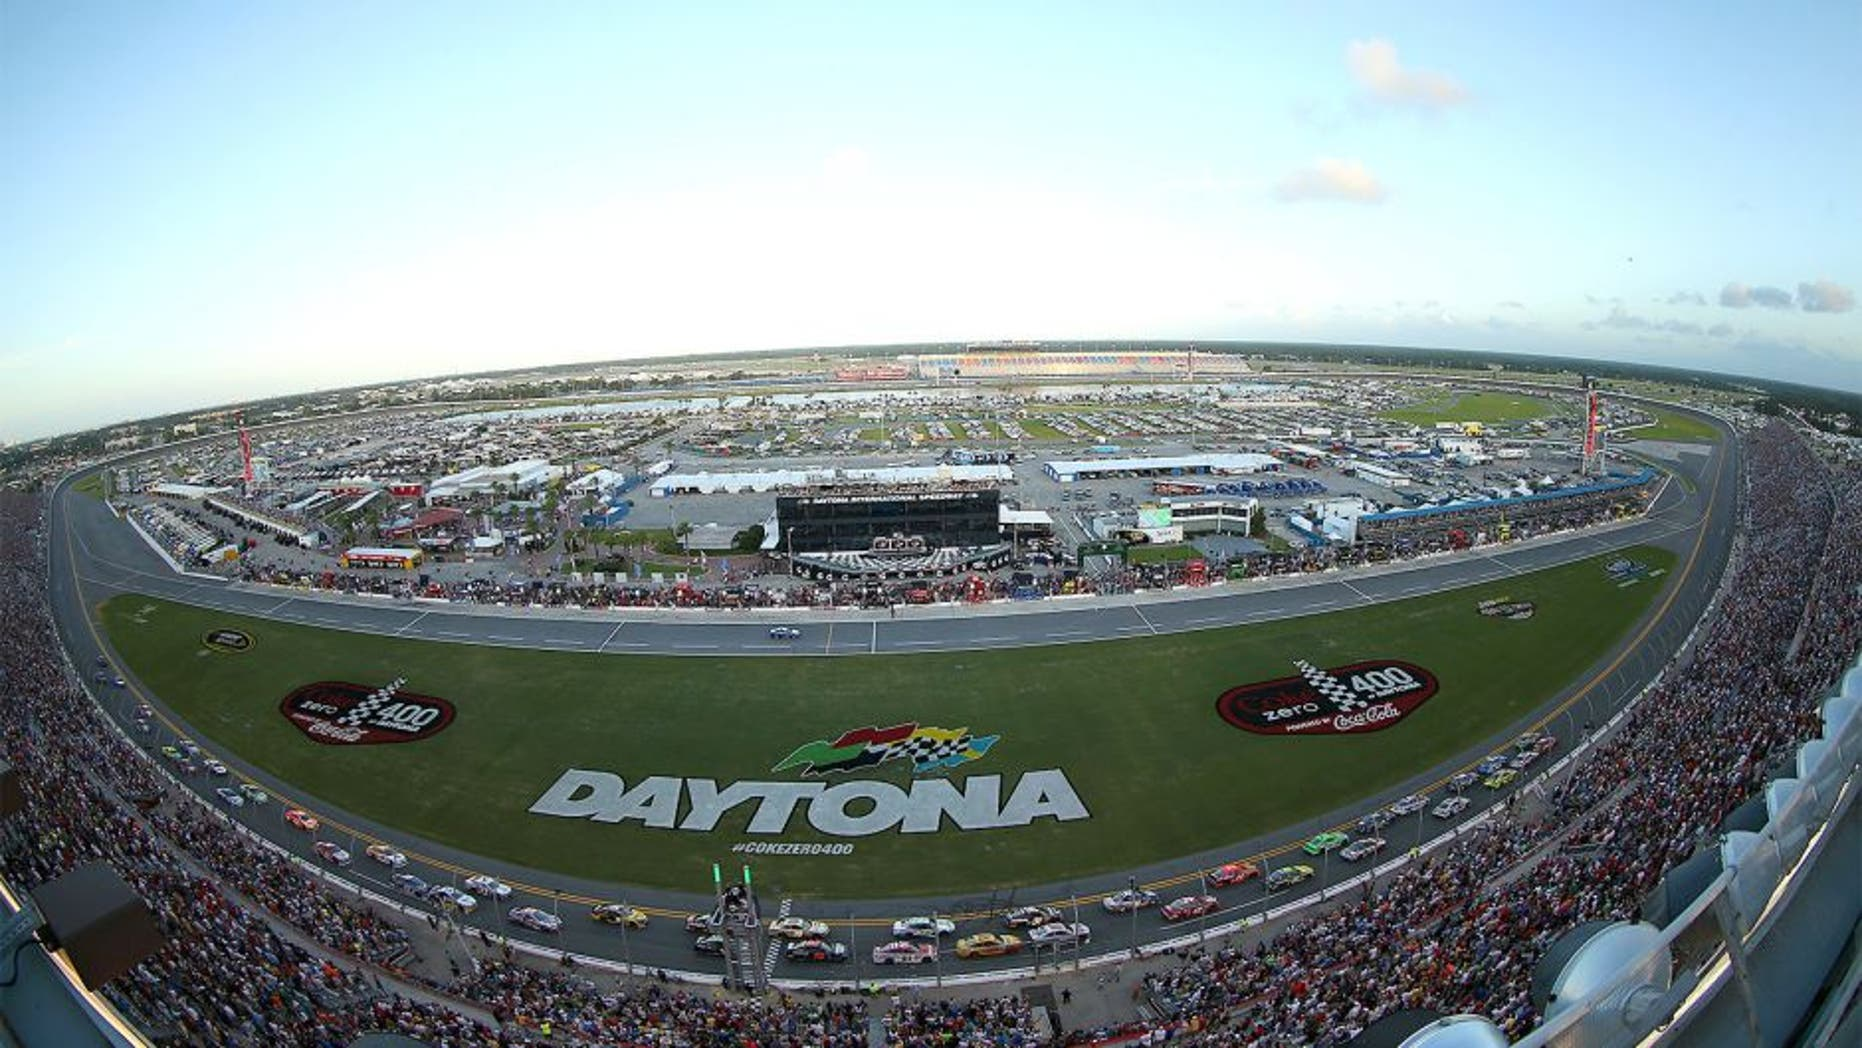 DAYTONA BEACH, FL - JULY 06: (Lead cars from top) Kyle Busch, driver of the #18 Interstate Batteries Toyota and Matt Kenseth, driver of the #20 Home Depot / Husky Toyota, lead the field at the start of the NASCAR Sprint Cup Series Coke Zero 400 at Daytona International Speedway on July 6, 2013 in Daytona Beach, Florida. (Photo by Mike Ehrmann/Getty Images)